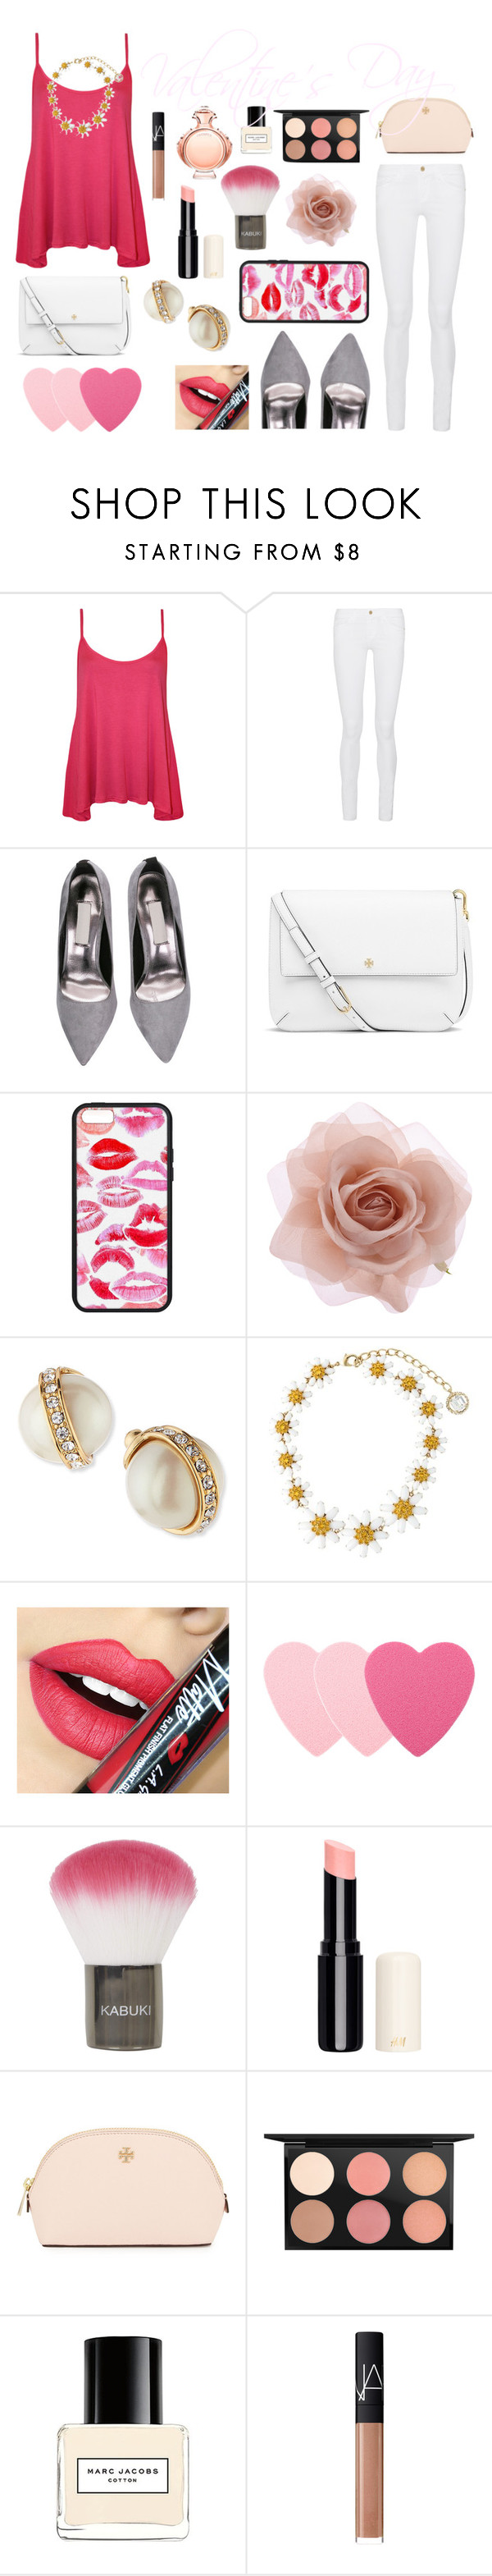 """Happy Valentine's!"" by panda-matowi0715 ❤ liked on Polyvore featuring WearAll, Frame Denim, Tory Burch, Accessorize, Kate Spade, Dolce&Gabbana, Fiebiger, Sephora Collection, Topshop and MAC Cosmetics"